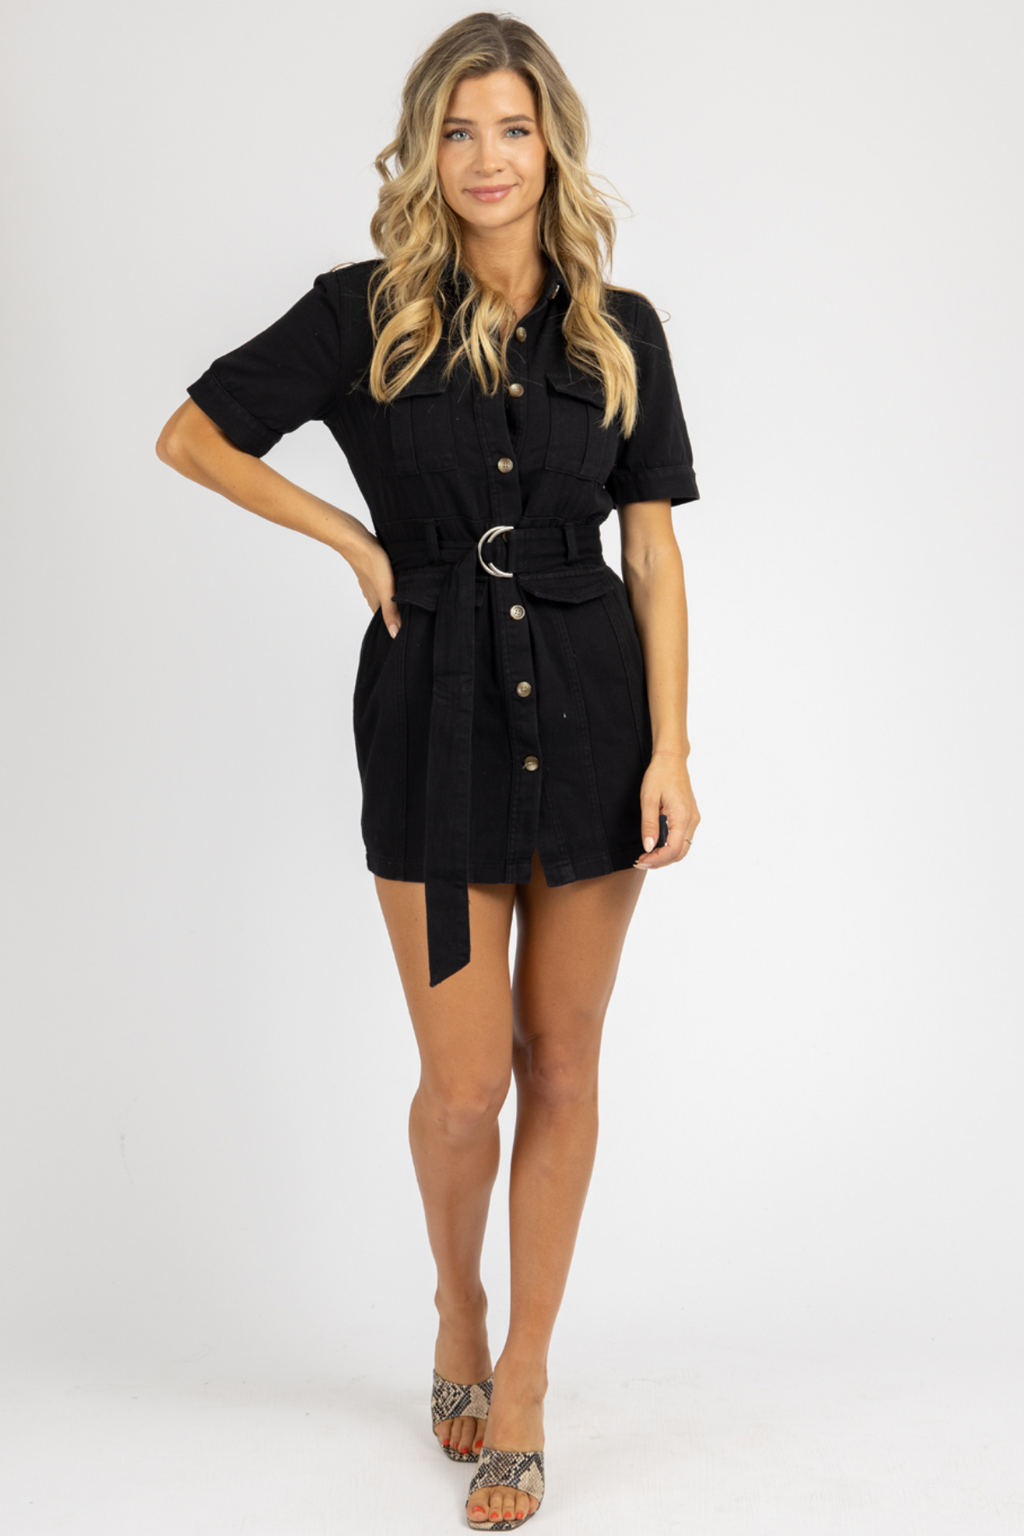 BLACK DENIM BELTED MINI DRESS *RESTOCK COMING SOON*